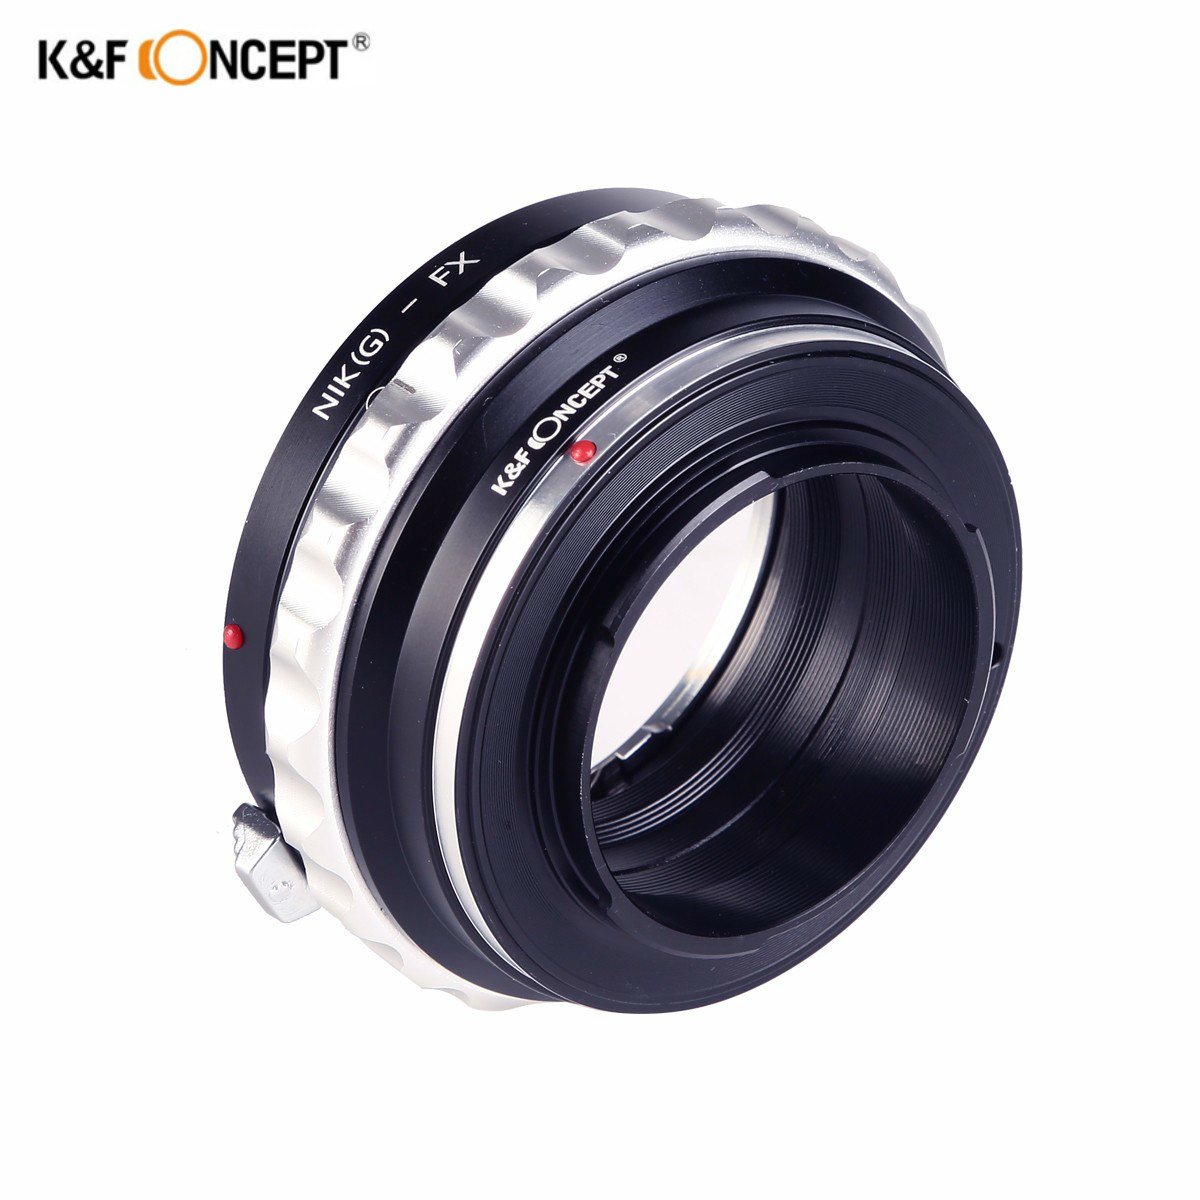 K&F CONCEPT Lens Adapter Mount Ring for AI(G)-FX AI lens to fuji FX X X-Pro1 E1 XPro1 Camera Body Free Shipping цена